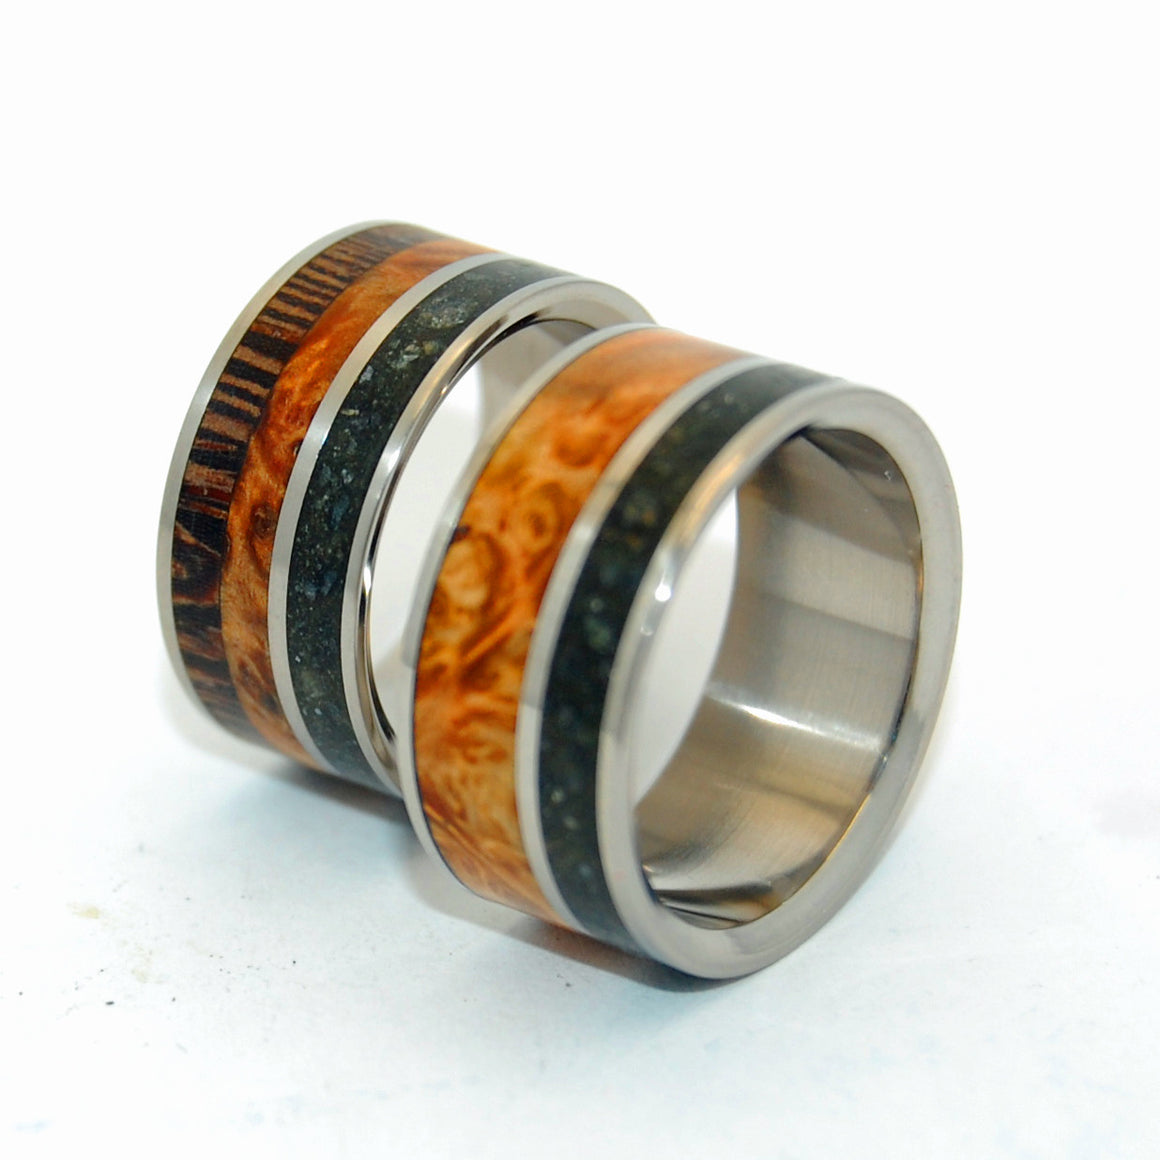 Go Forth and Bear Fruit | Concrete and Wood Wedding Ring Set